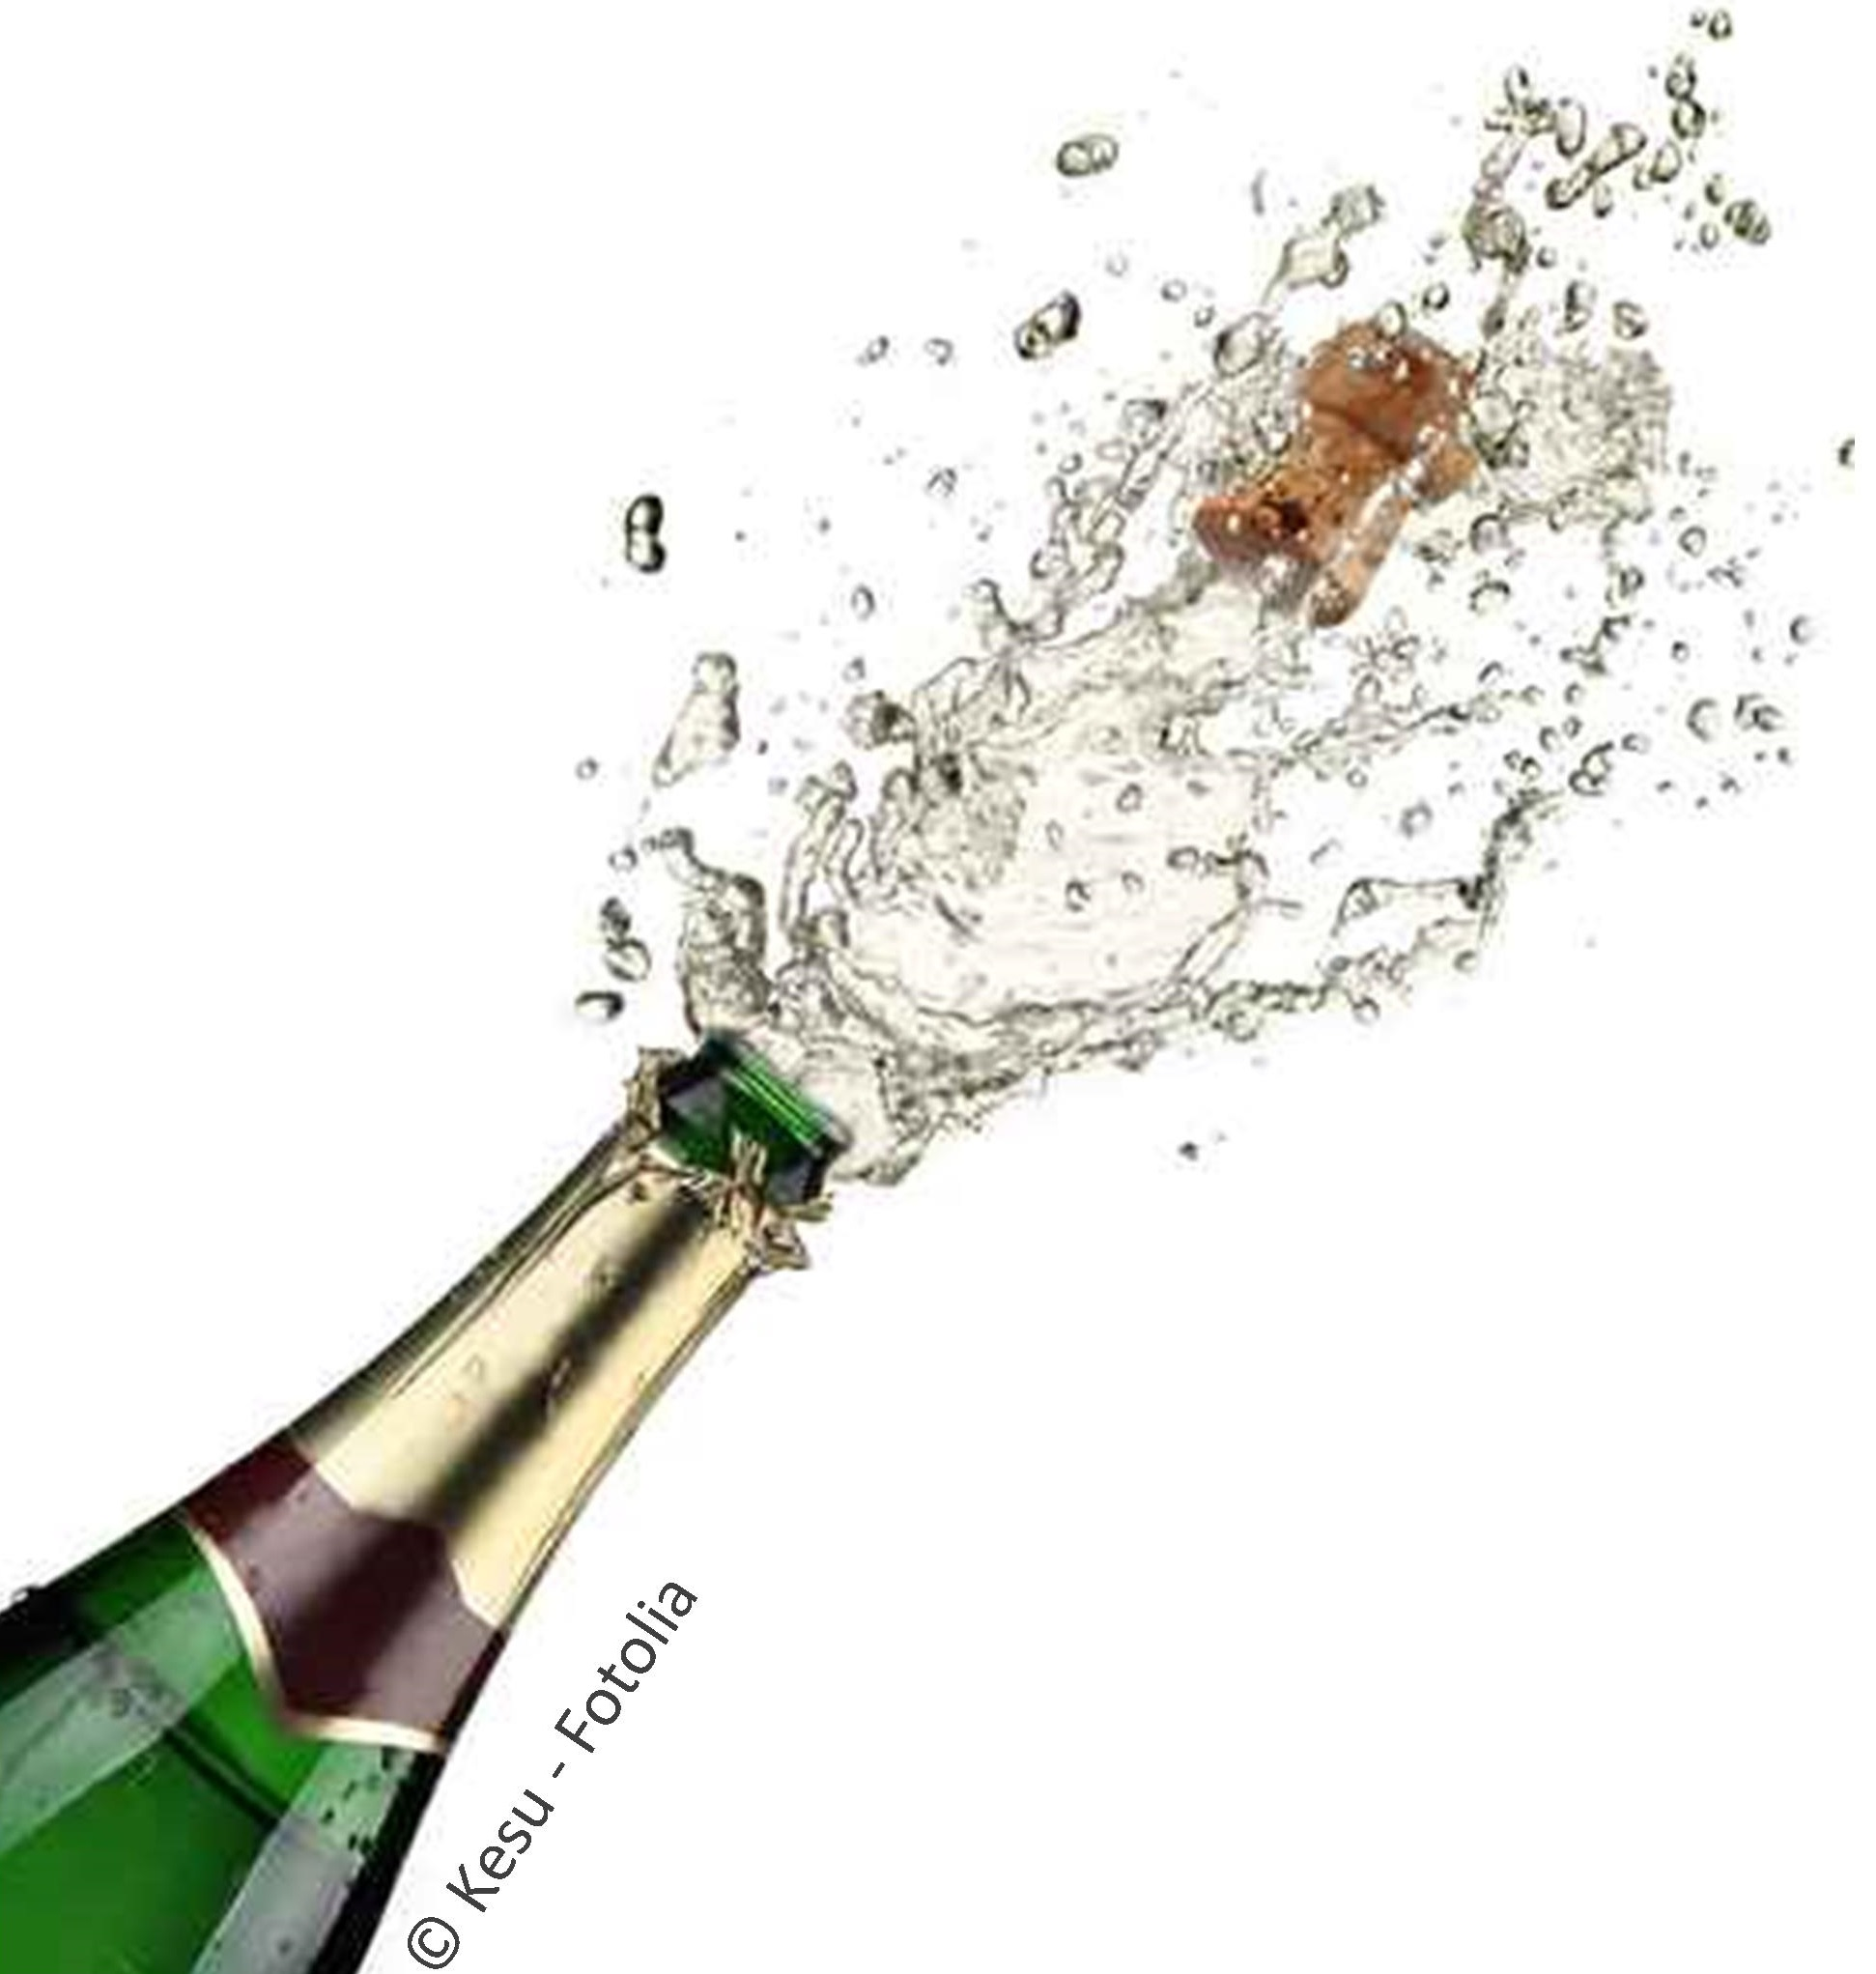 Champagne bottle with copyright